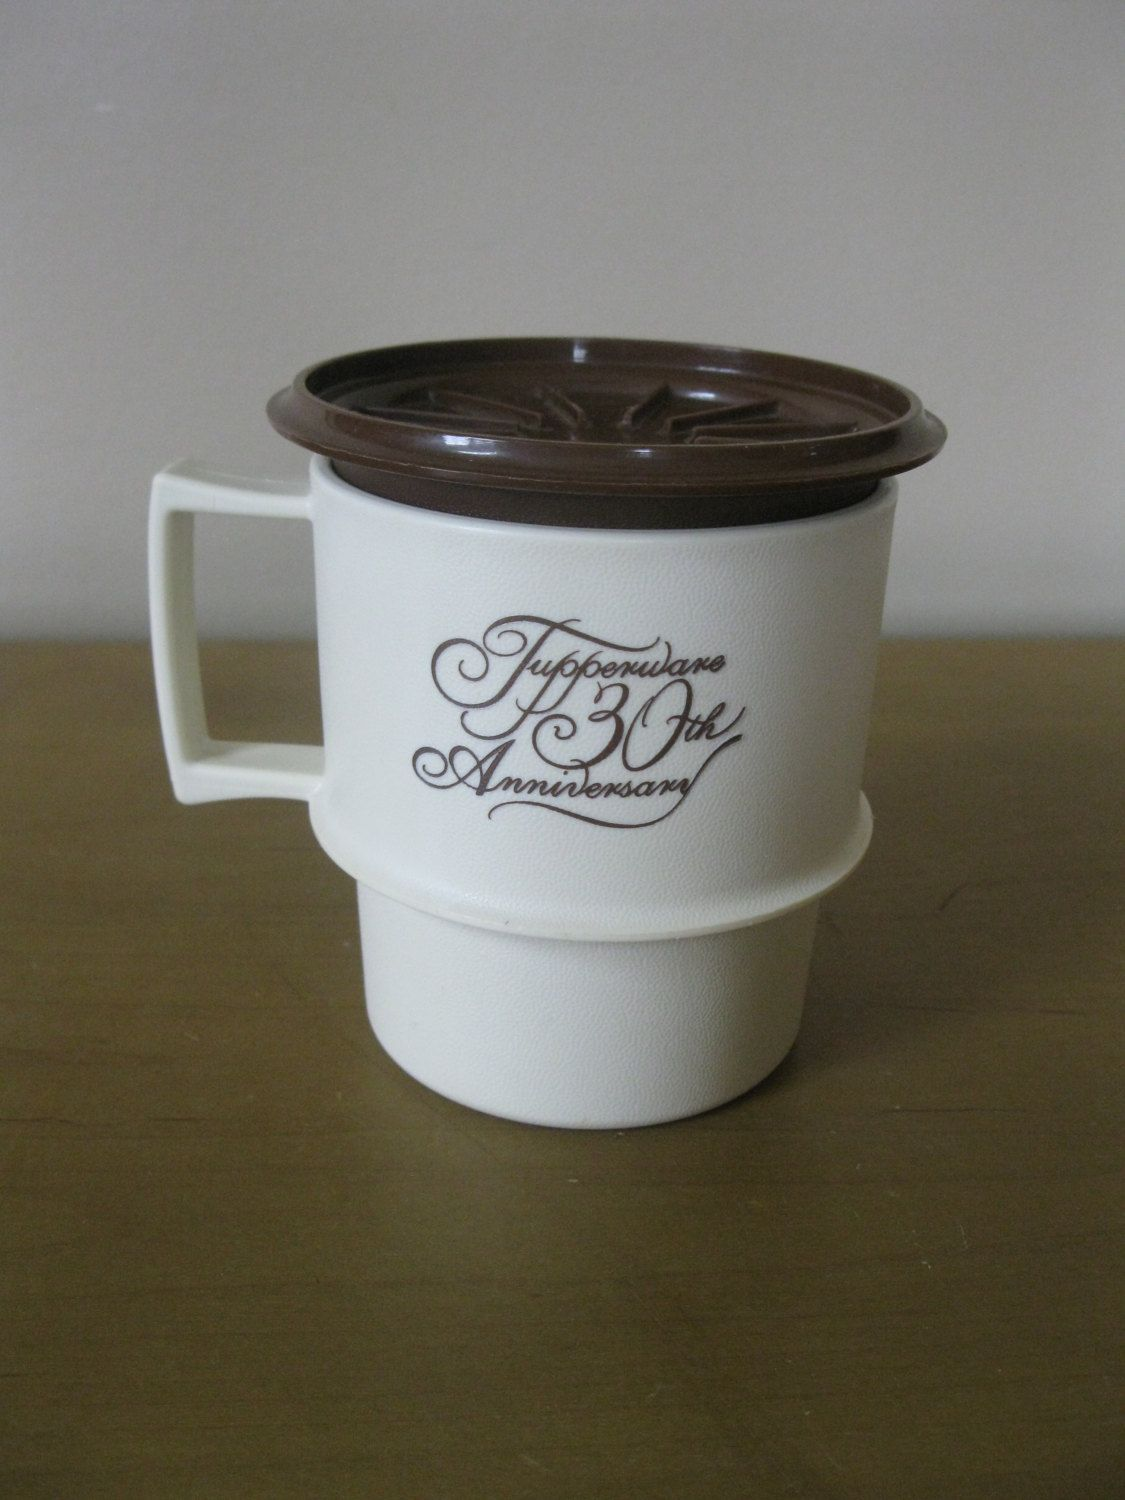 Vintage Tupperware 30th Anniversary mug WITH coaster